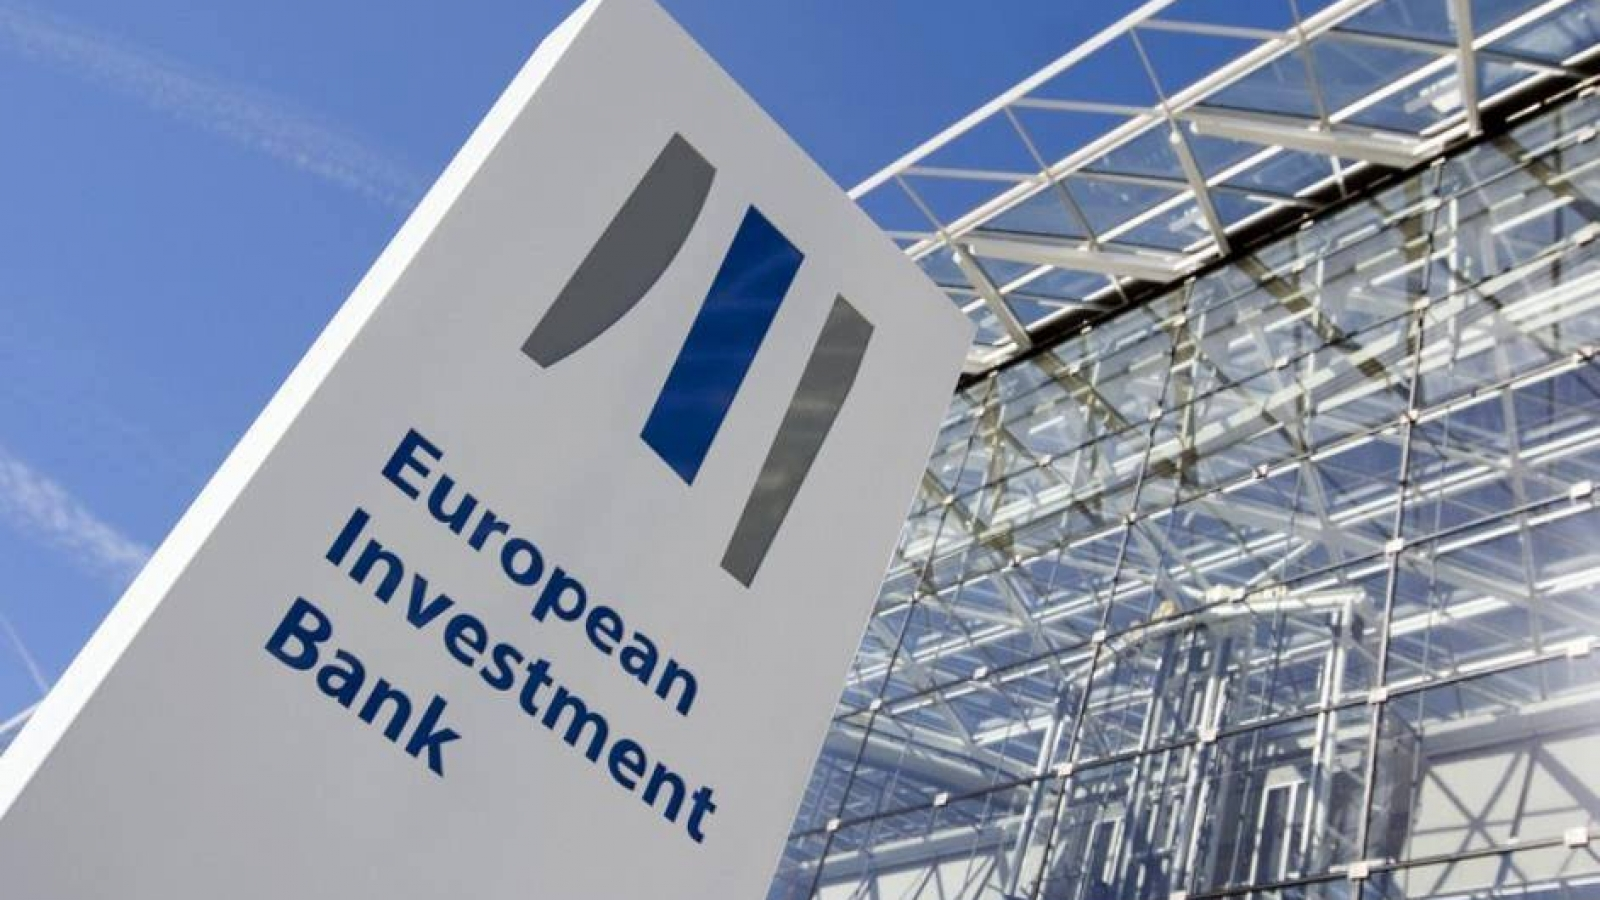 European Investment Bank and Bank of Alexandria sign a €20 million loan in support of local private sector